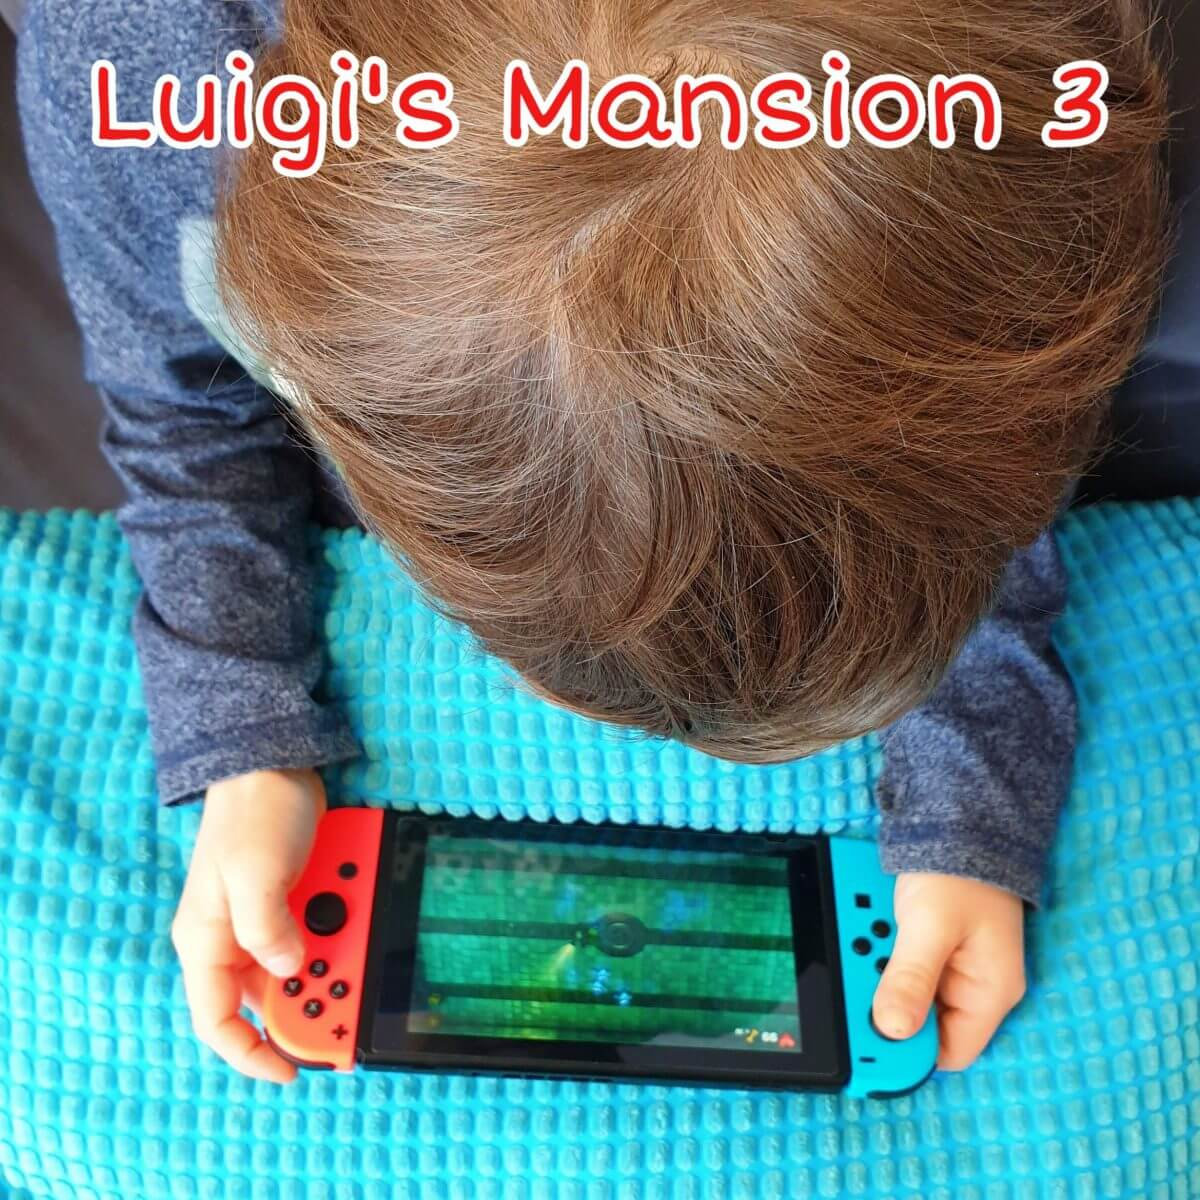 Luigi's Mansion 3 op de Nintendo Switch: game review